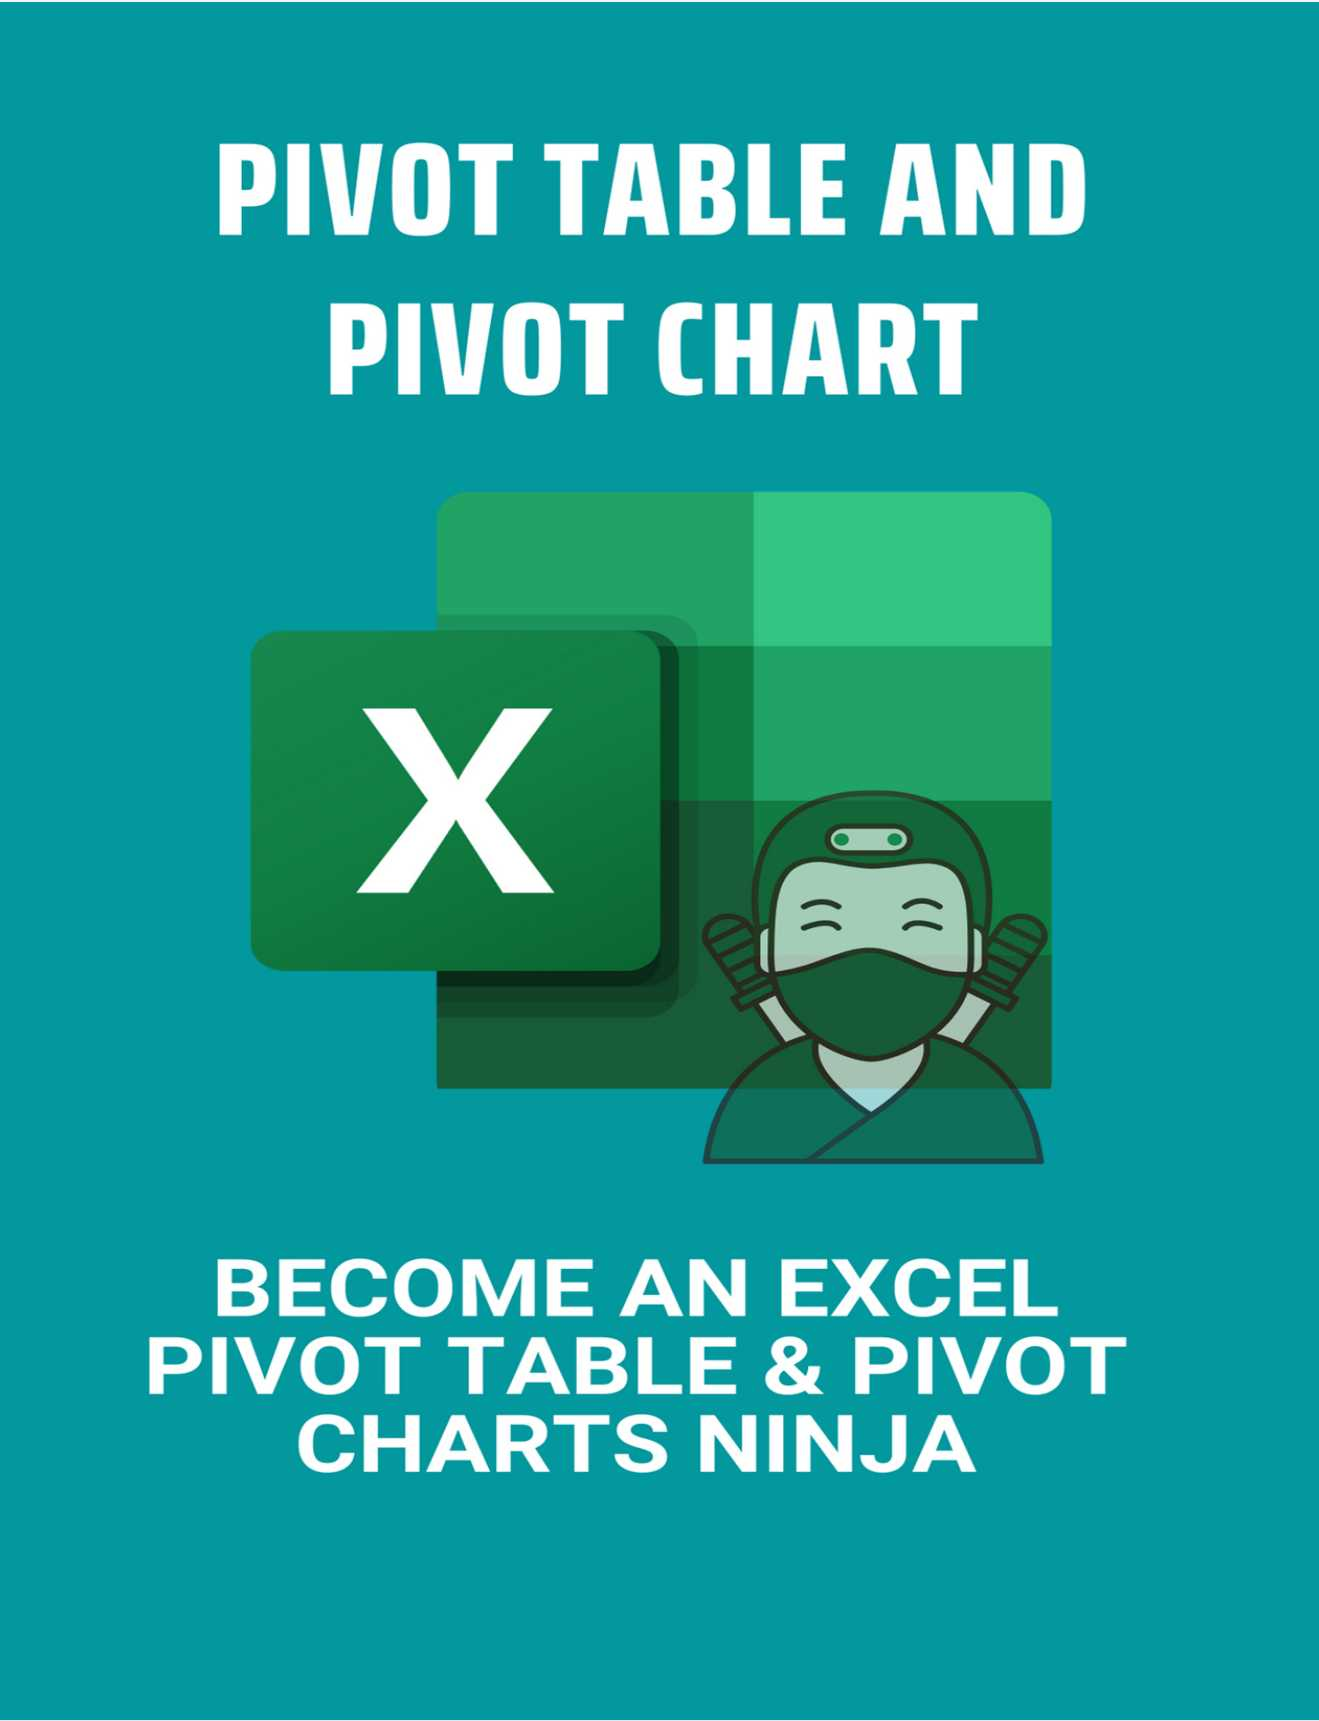 Pivot Table And Pivot Chart: Become An Excel Pivot Table & Pivot Charts Ninja: What Is A Category Label In A Pivot Chart